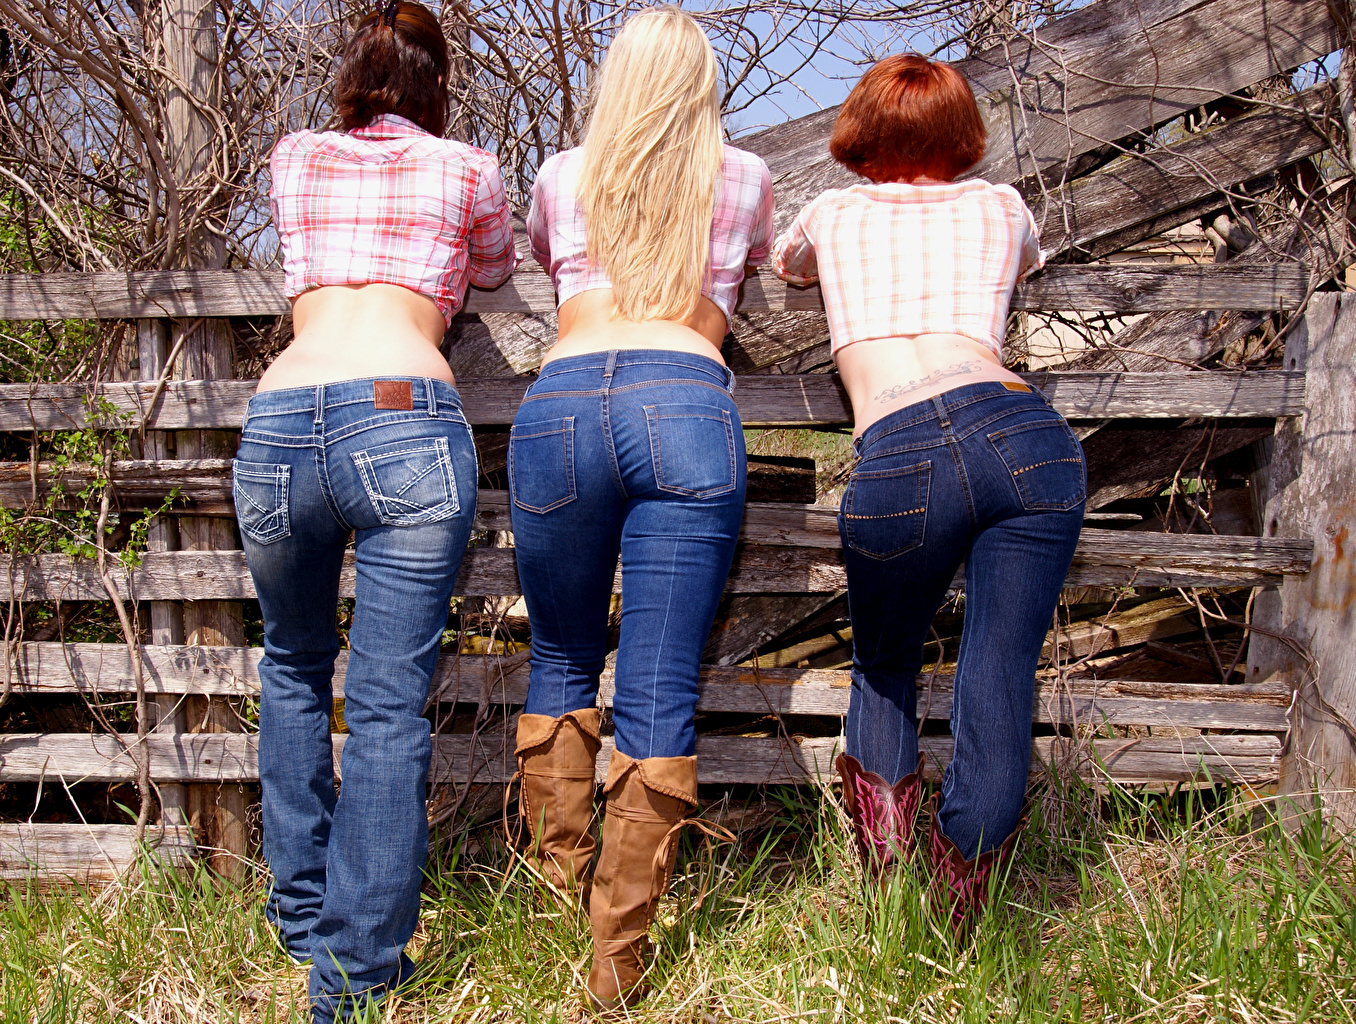 Image Ass buttocks Blonde girl Redhead girl Wearing boots Human back young woman Legs Fence Jeans Three 3 Back view Girls female